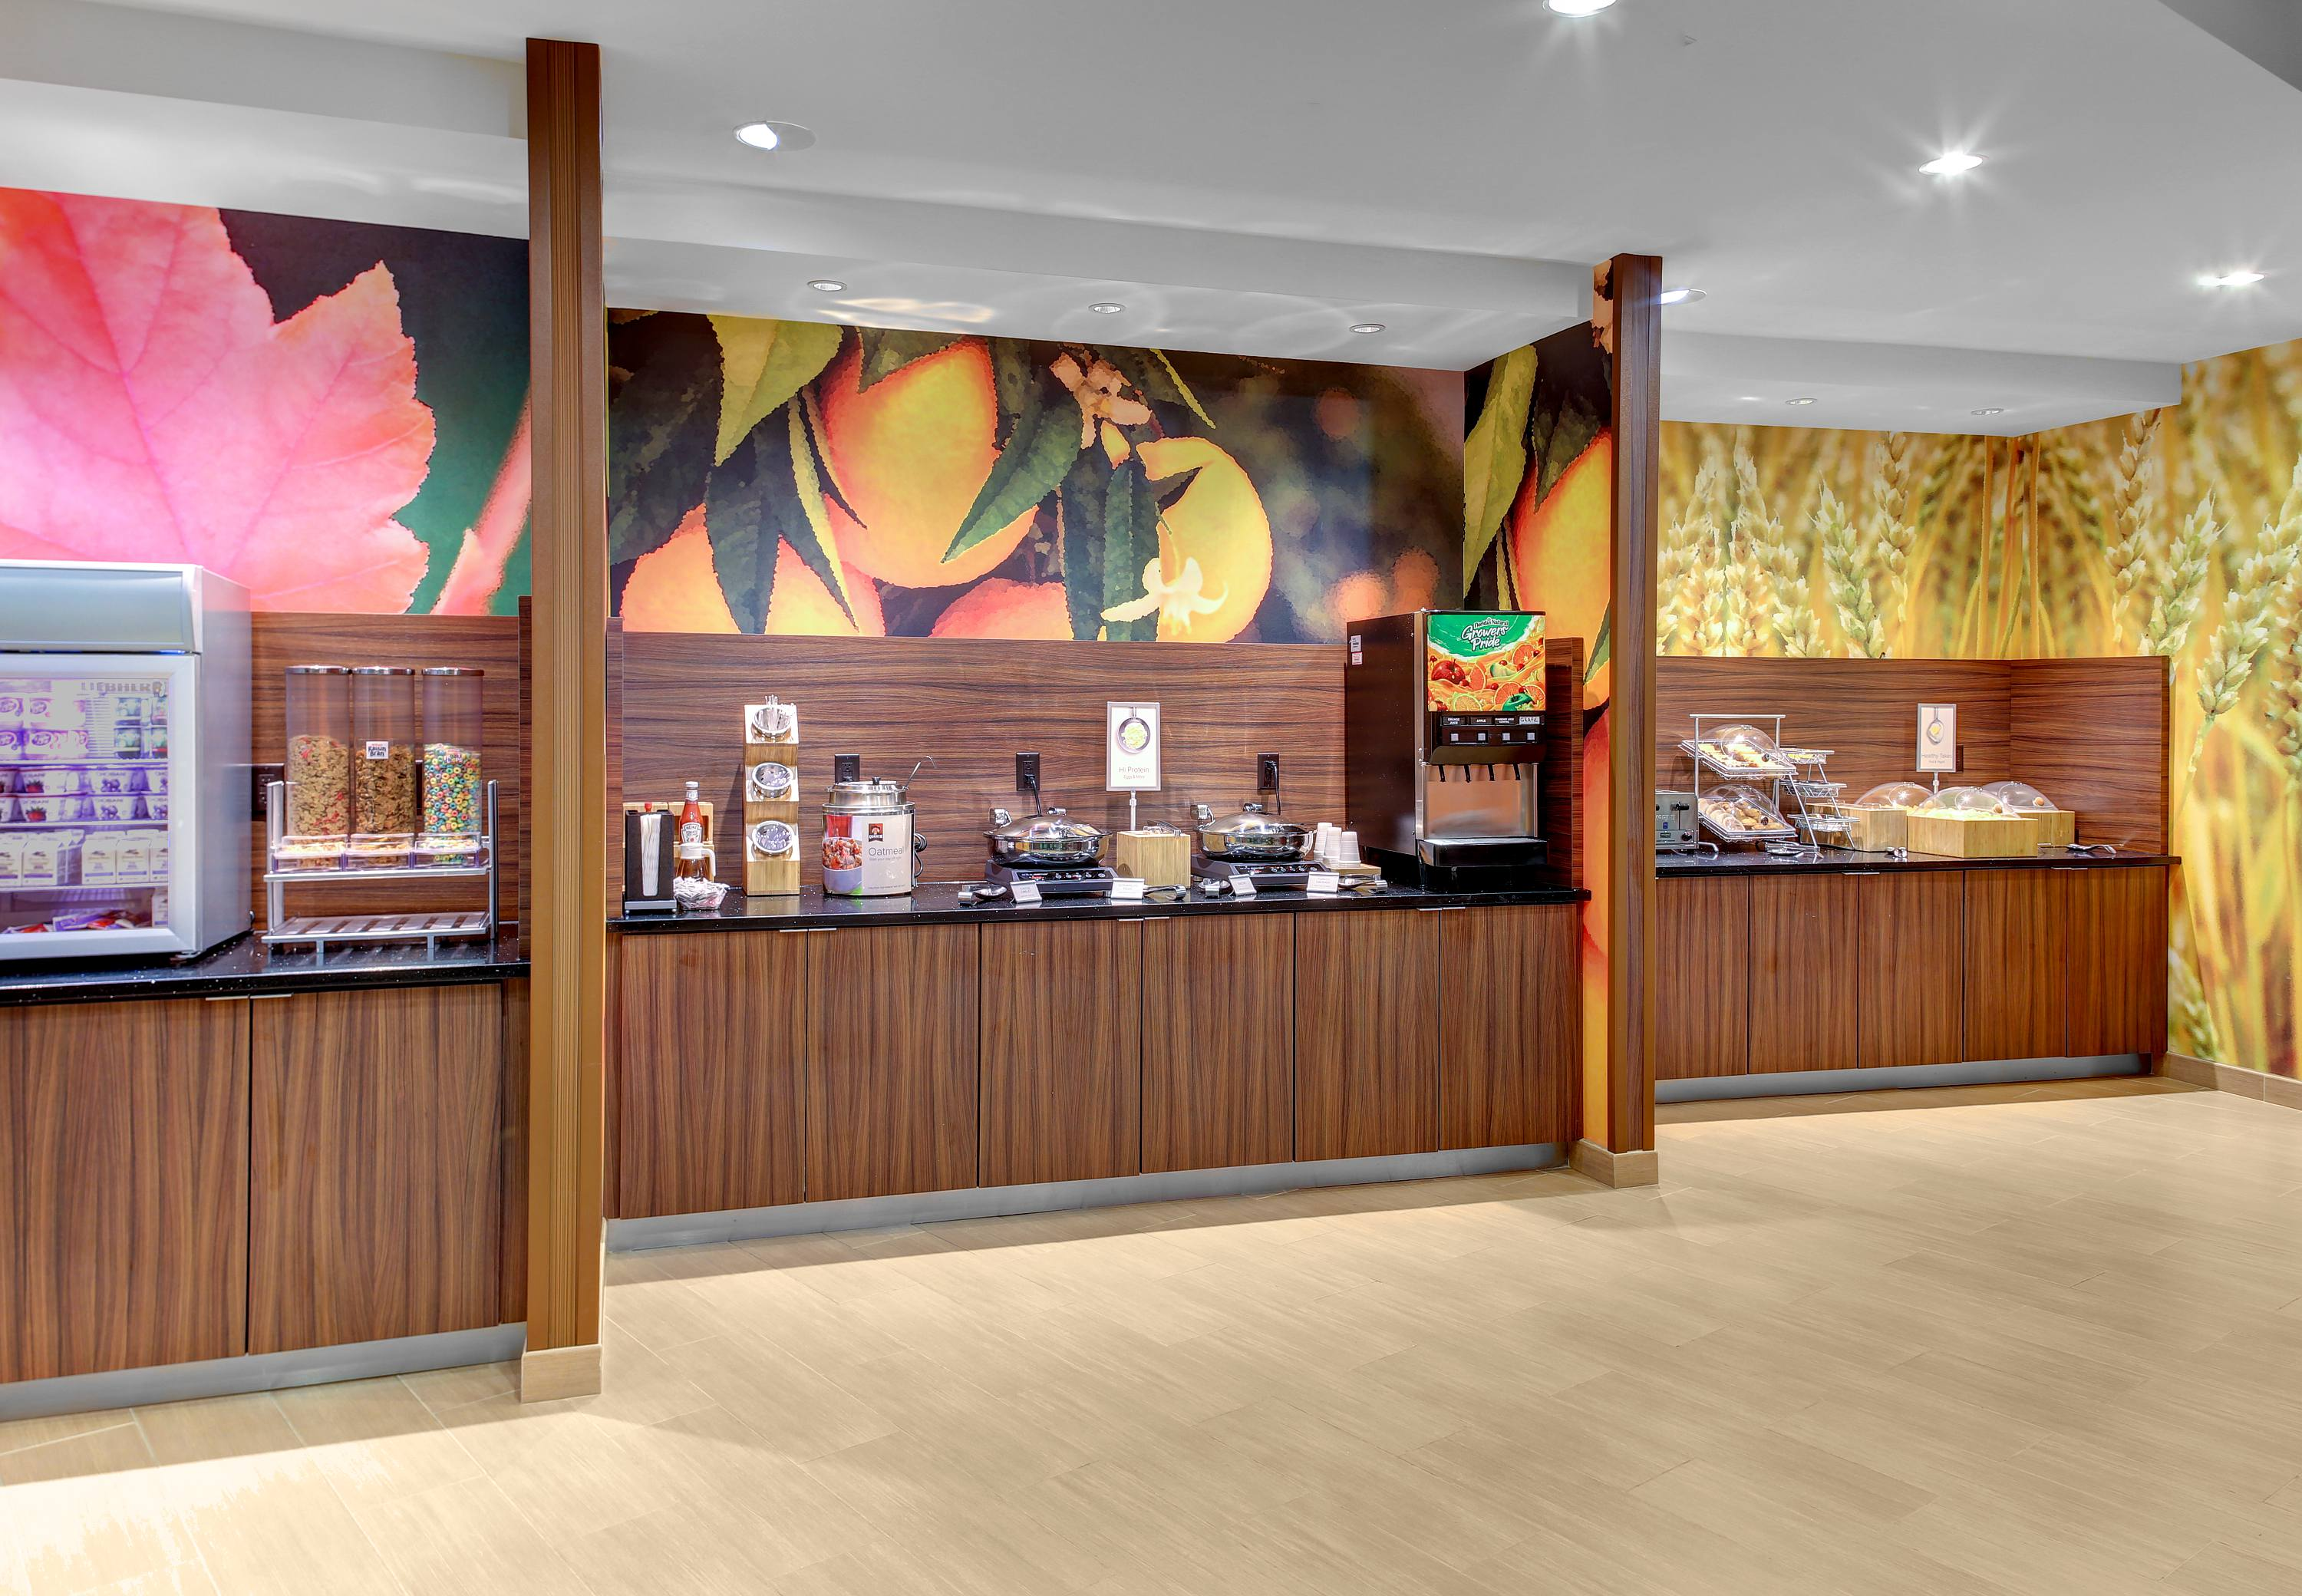 Fairfield Inn & Suites by Marriott Atlanta Stockbridge image 13